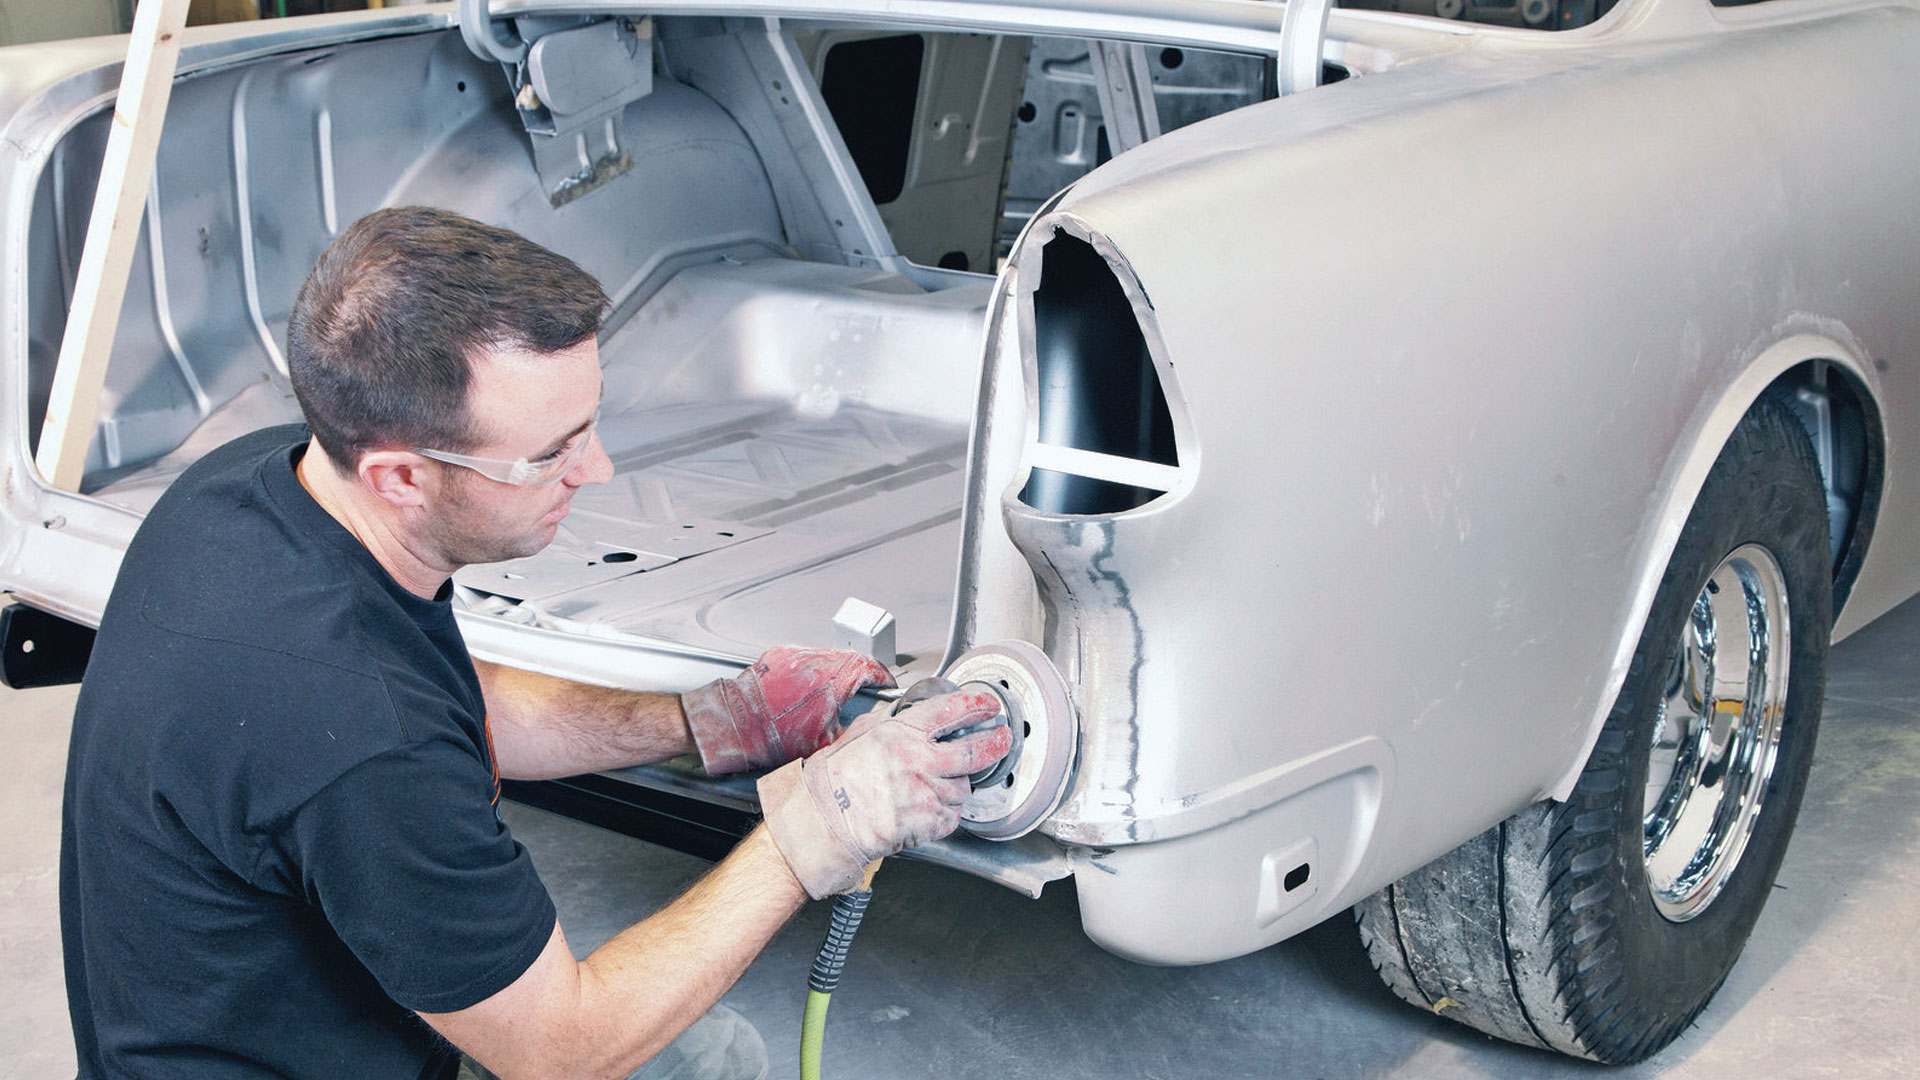 Detailing / Refinish and Automotive body repair